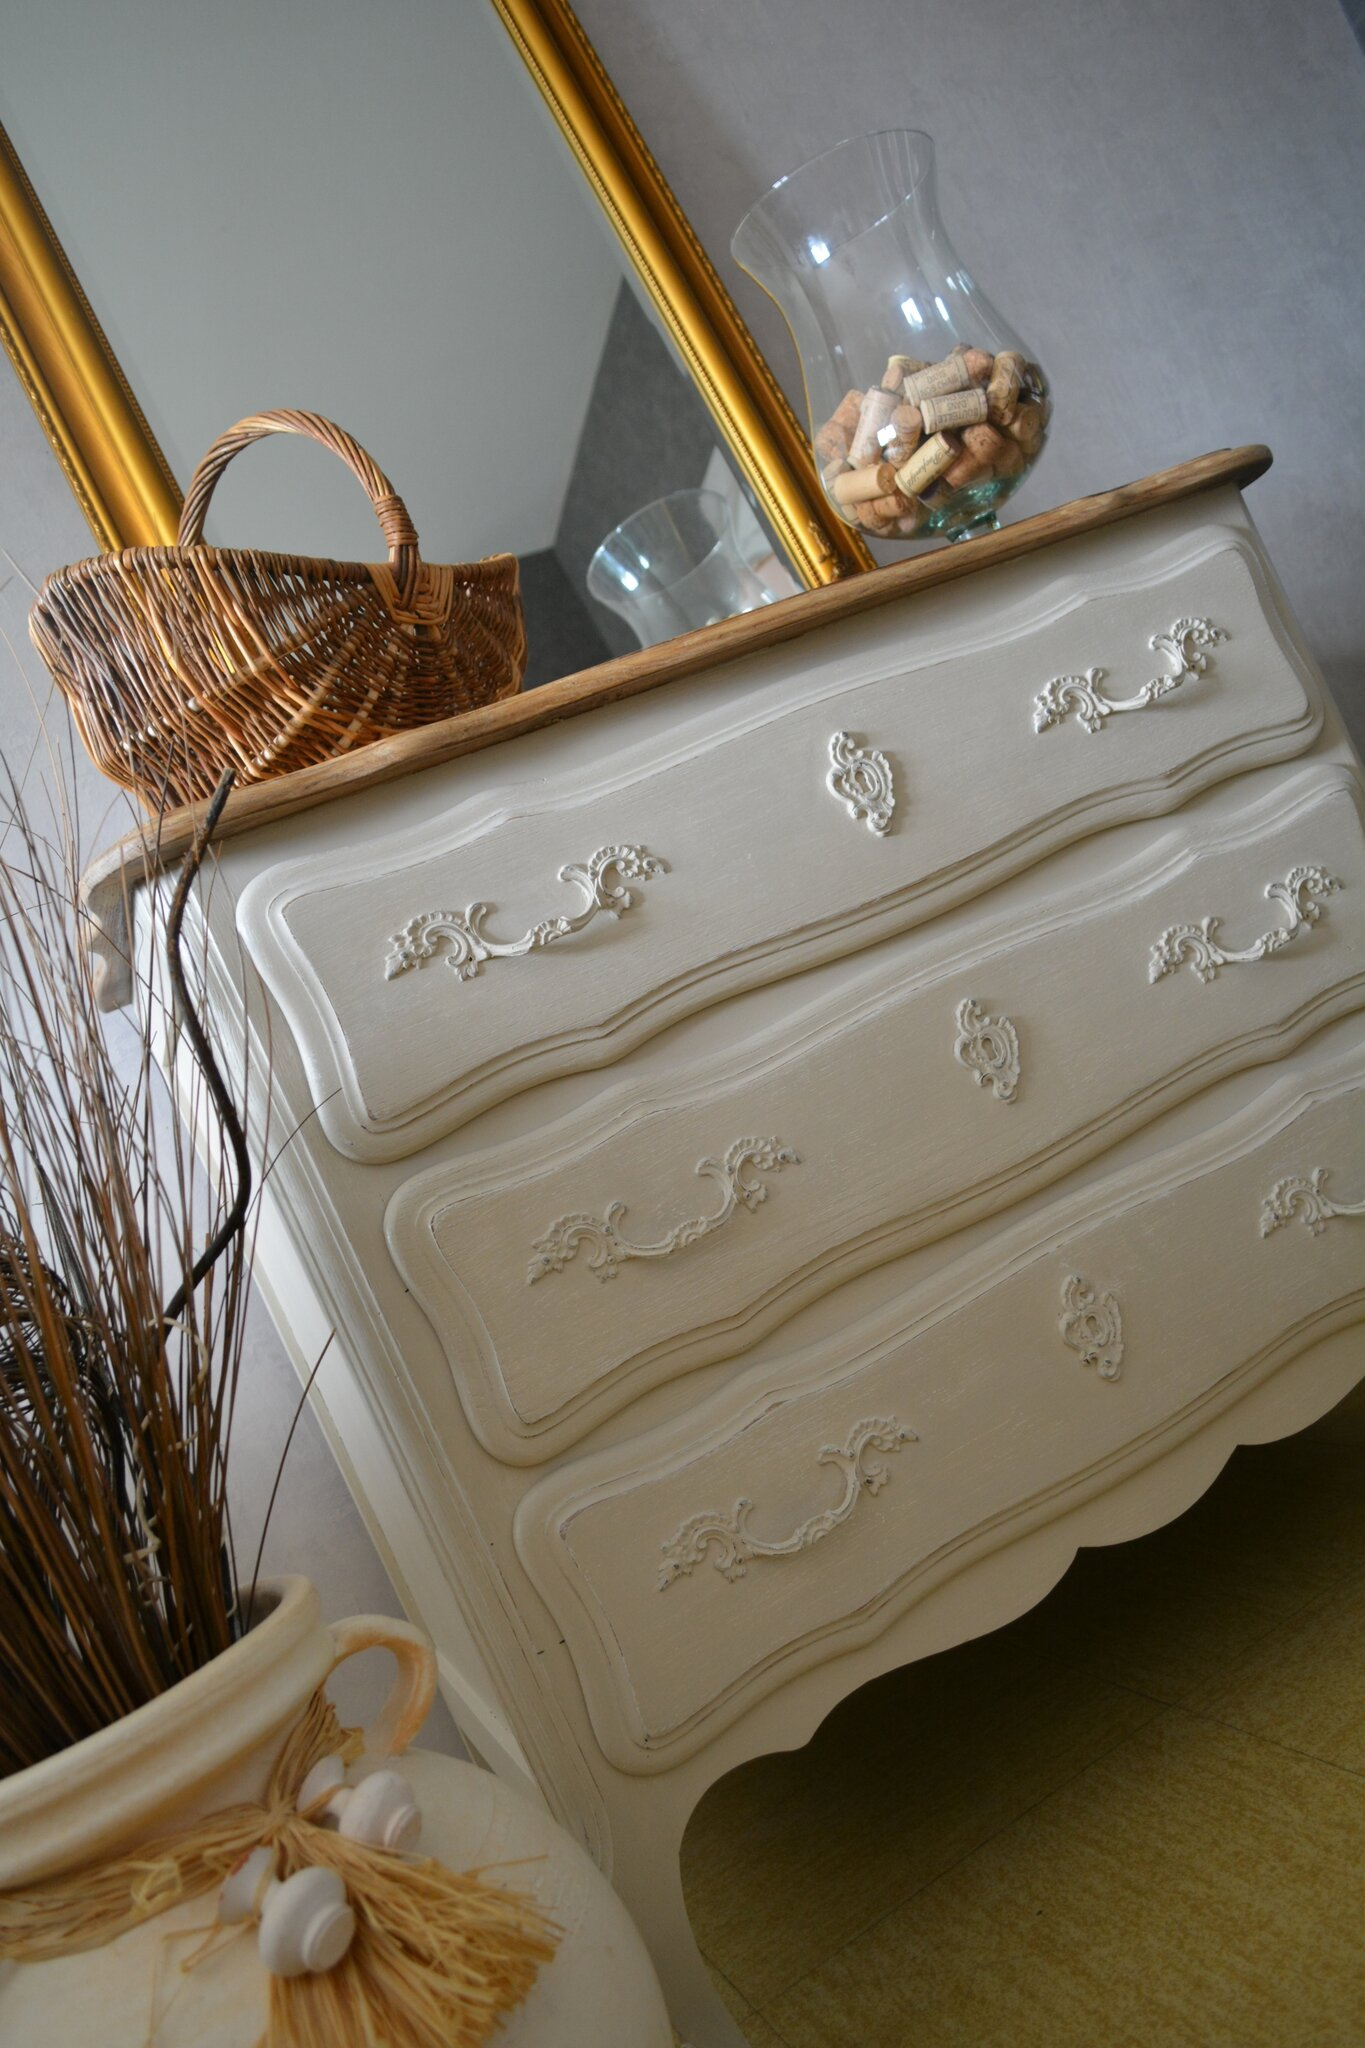 Commode en ch ne campagne shabby chic les patines d for Mobilier de charme chic campagne